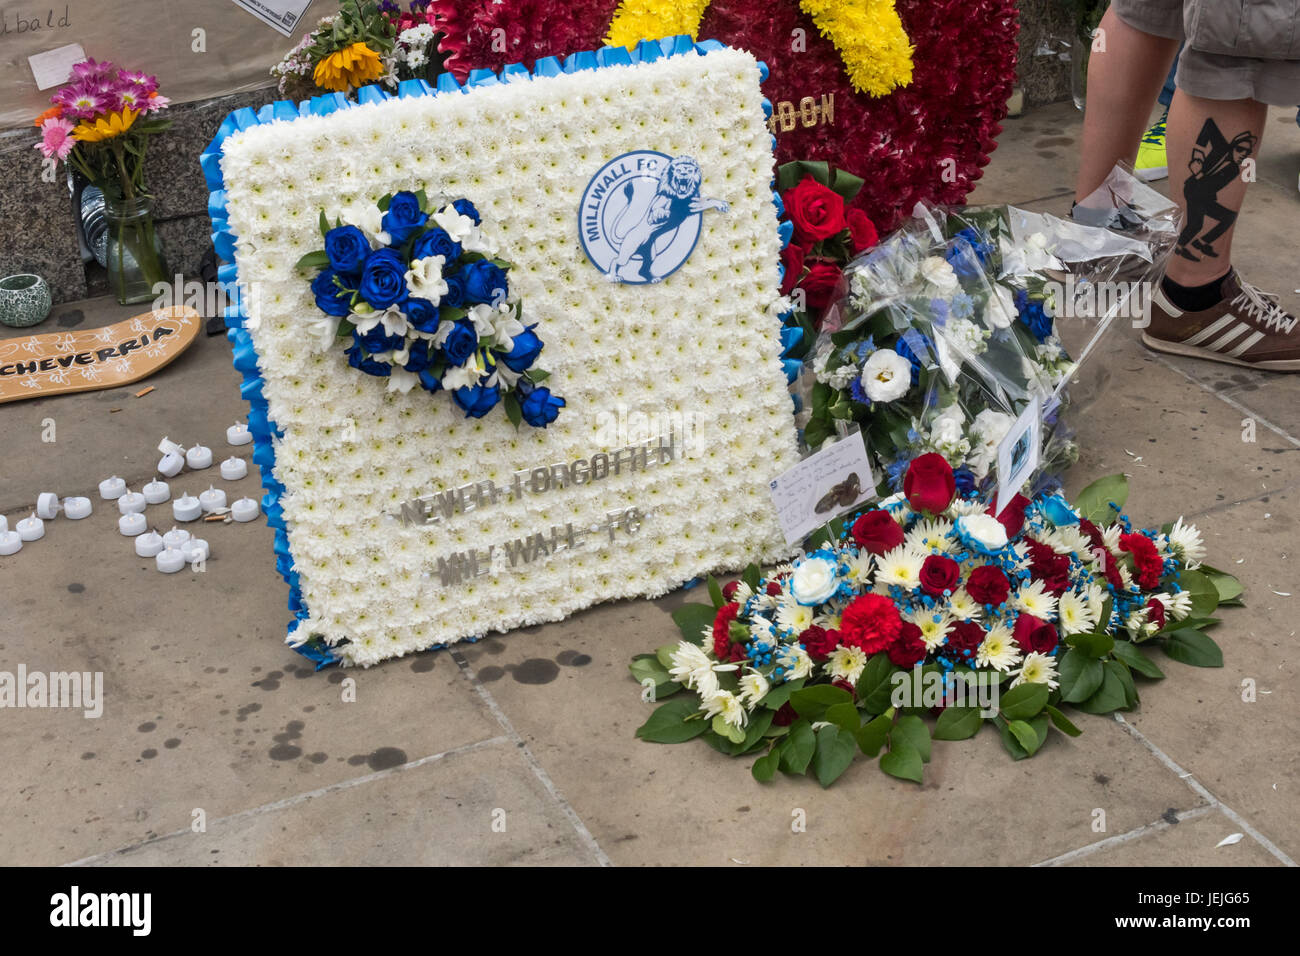 June 24 2017 london uk london uk 24th september 2017 june 24 2017 london uk london uk 24th september 2017 wreaths and flowers from fans of millwall west ham and portsmouth on london bridge after the izmirmasajfo